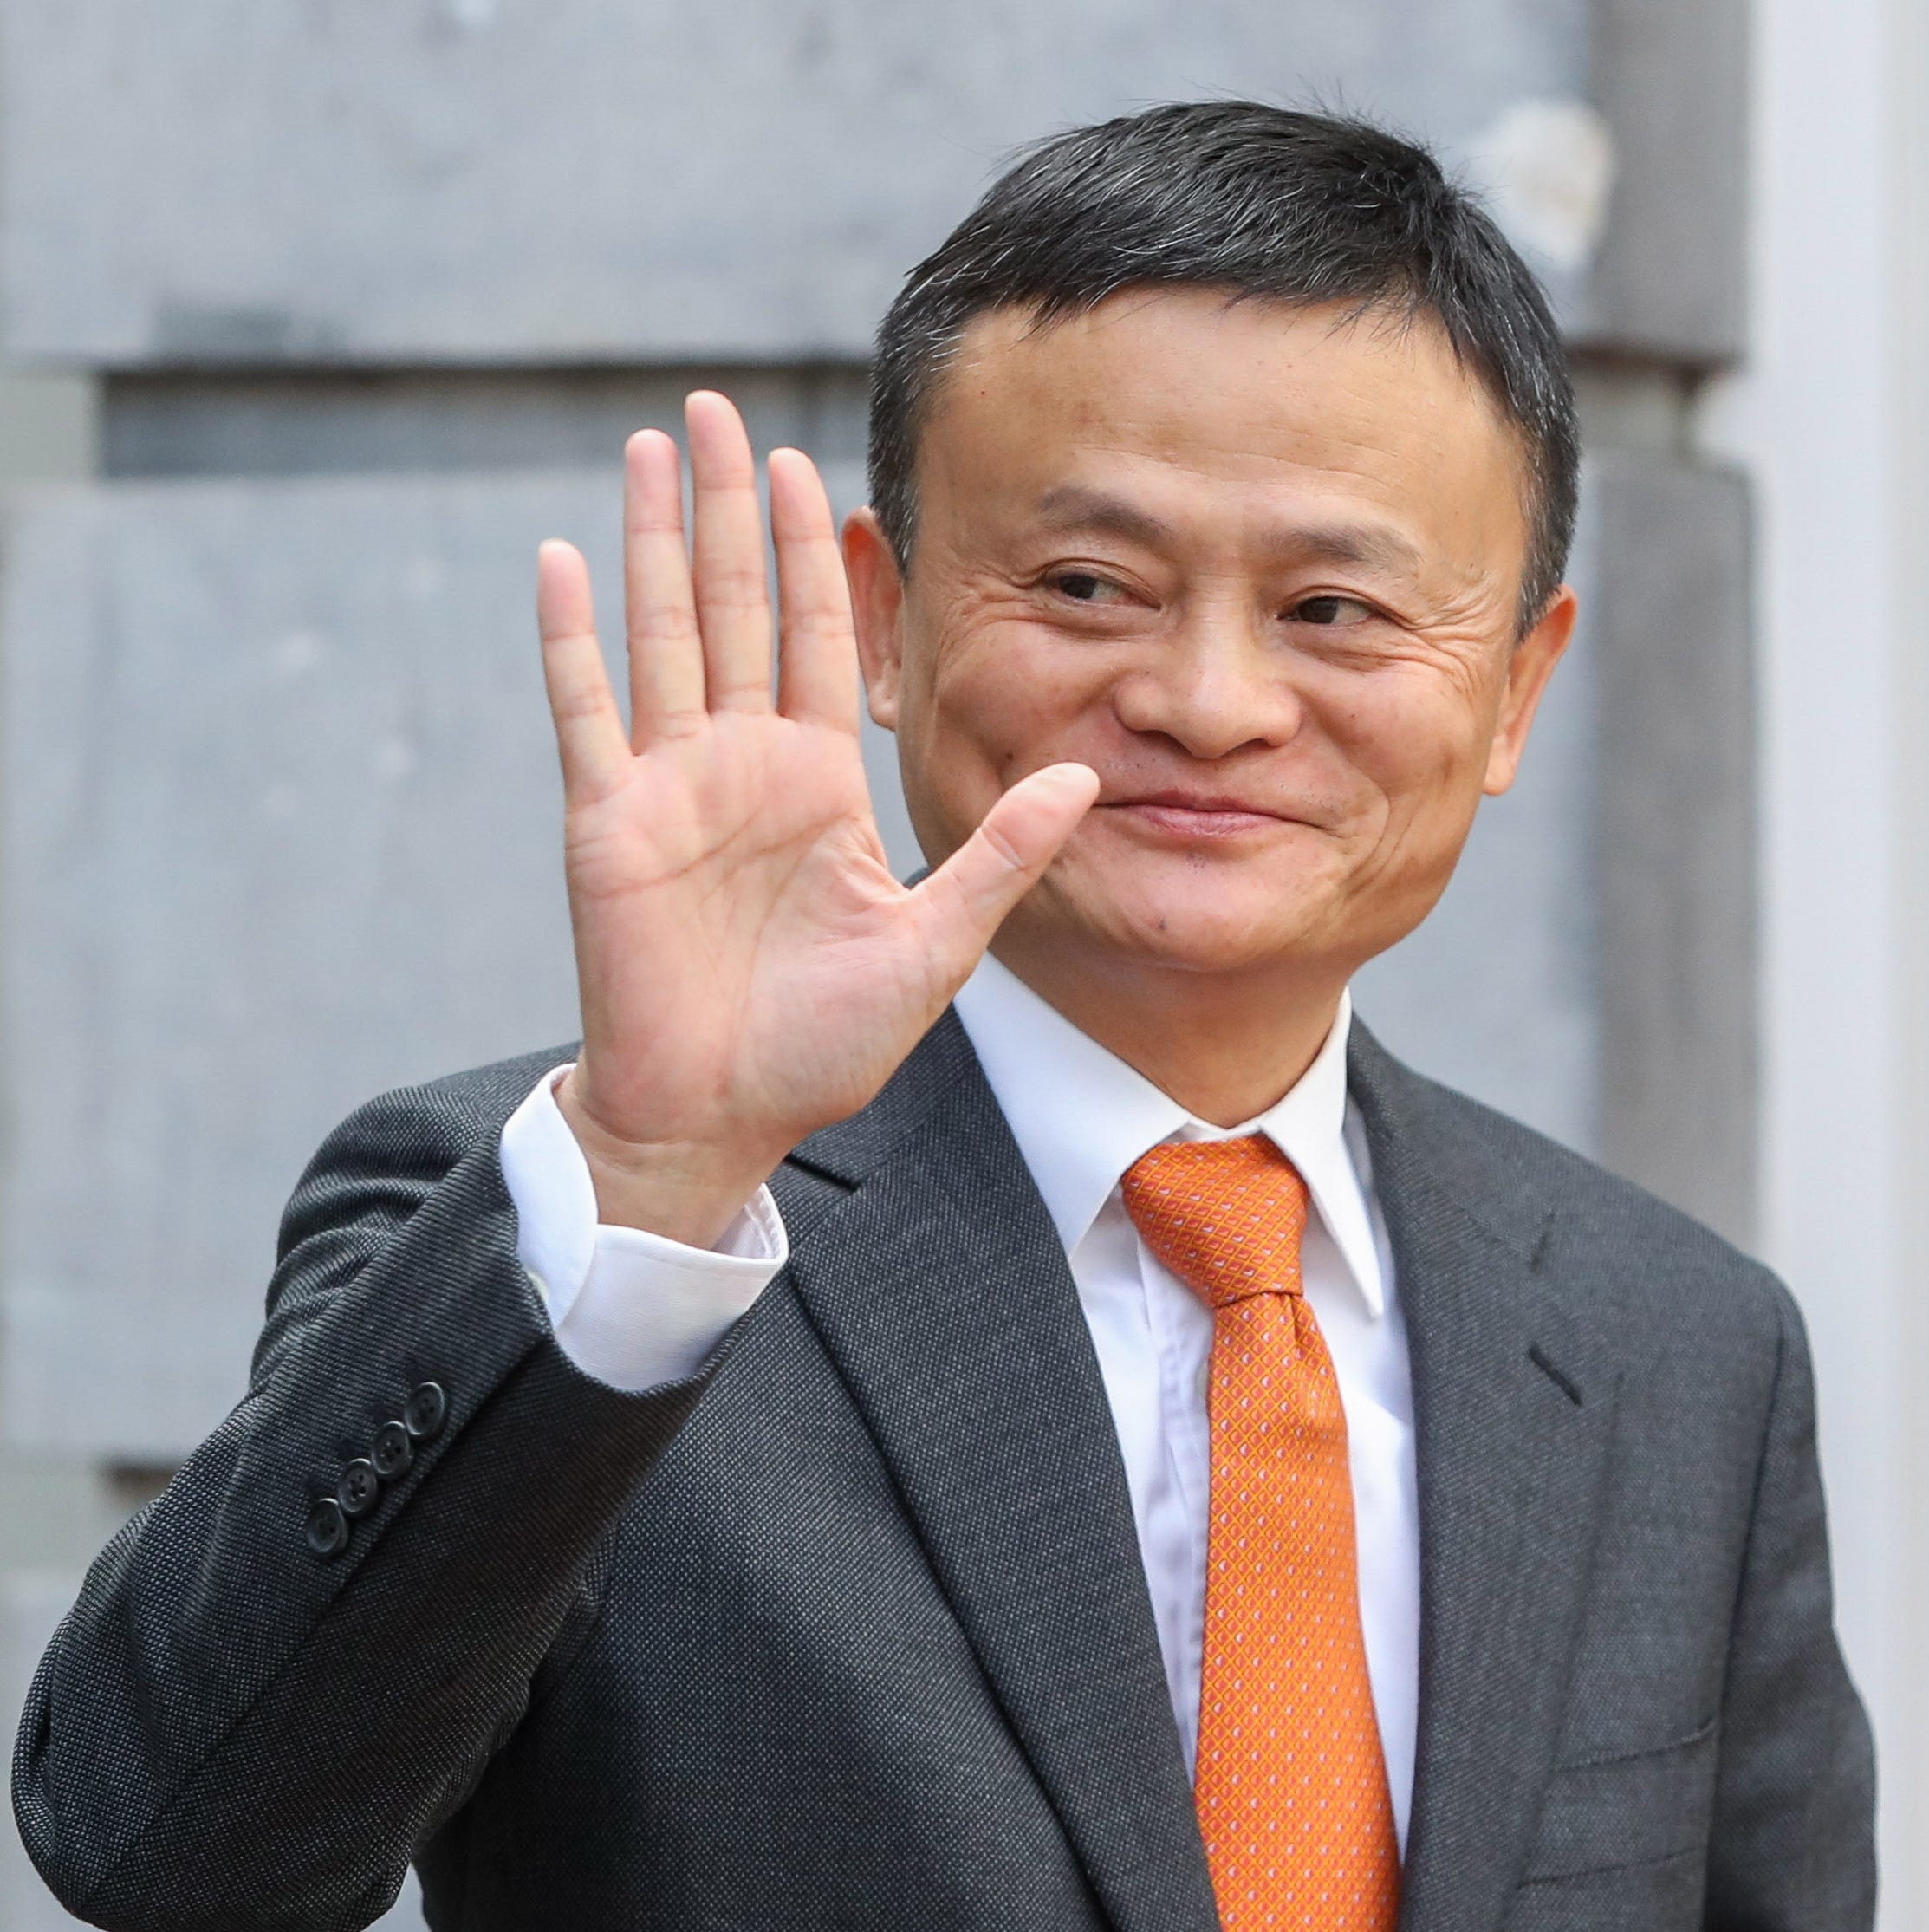 Jack Ma, the founder and executive chairman of Chinese e-commerce company Alibaba Group arrives for a meeting with Belgian Prime Minister Charles Michel  at the Lambermont in Brussels, Belgium, 3 July 2018.